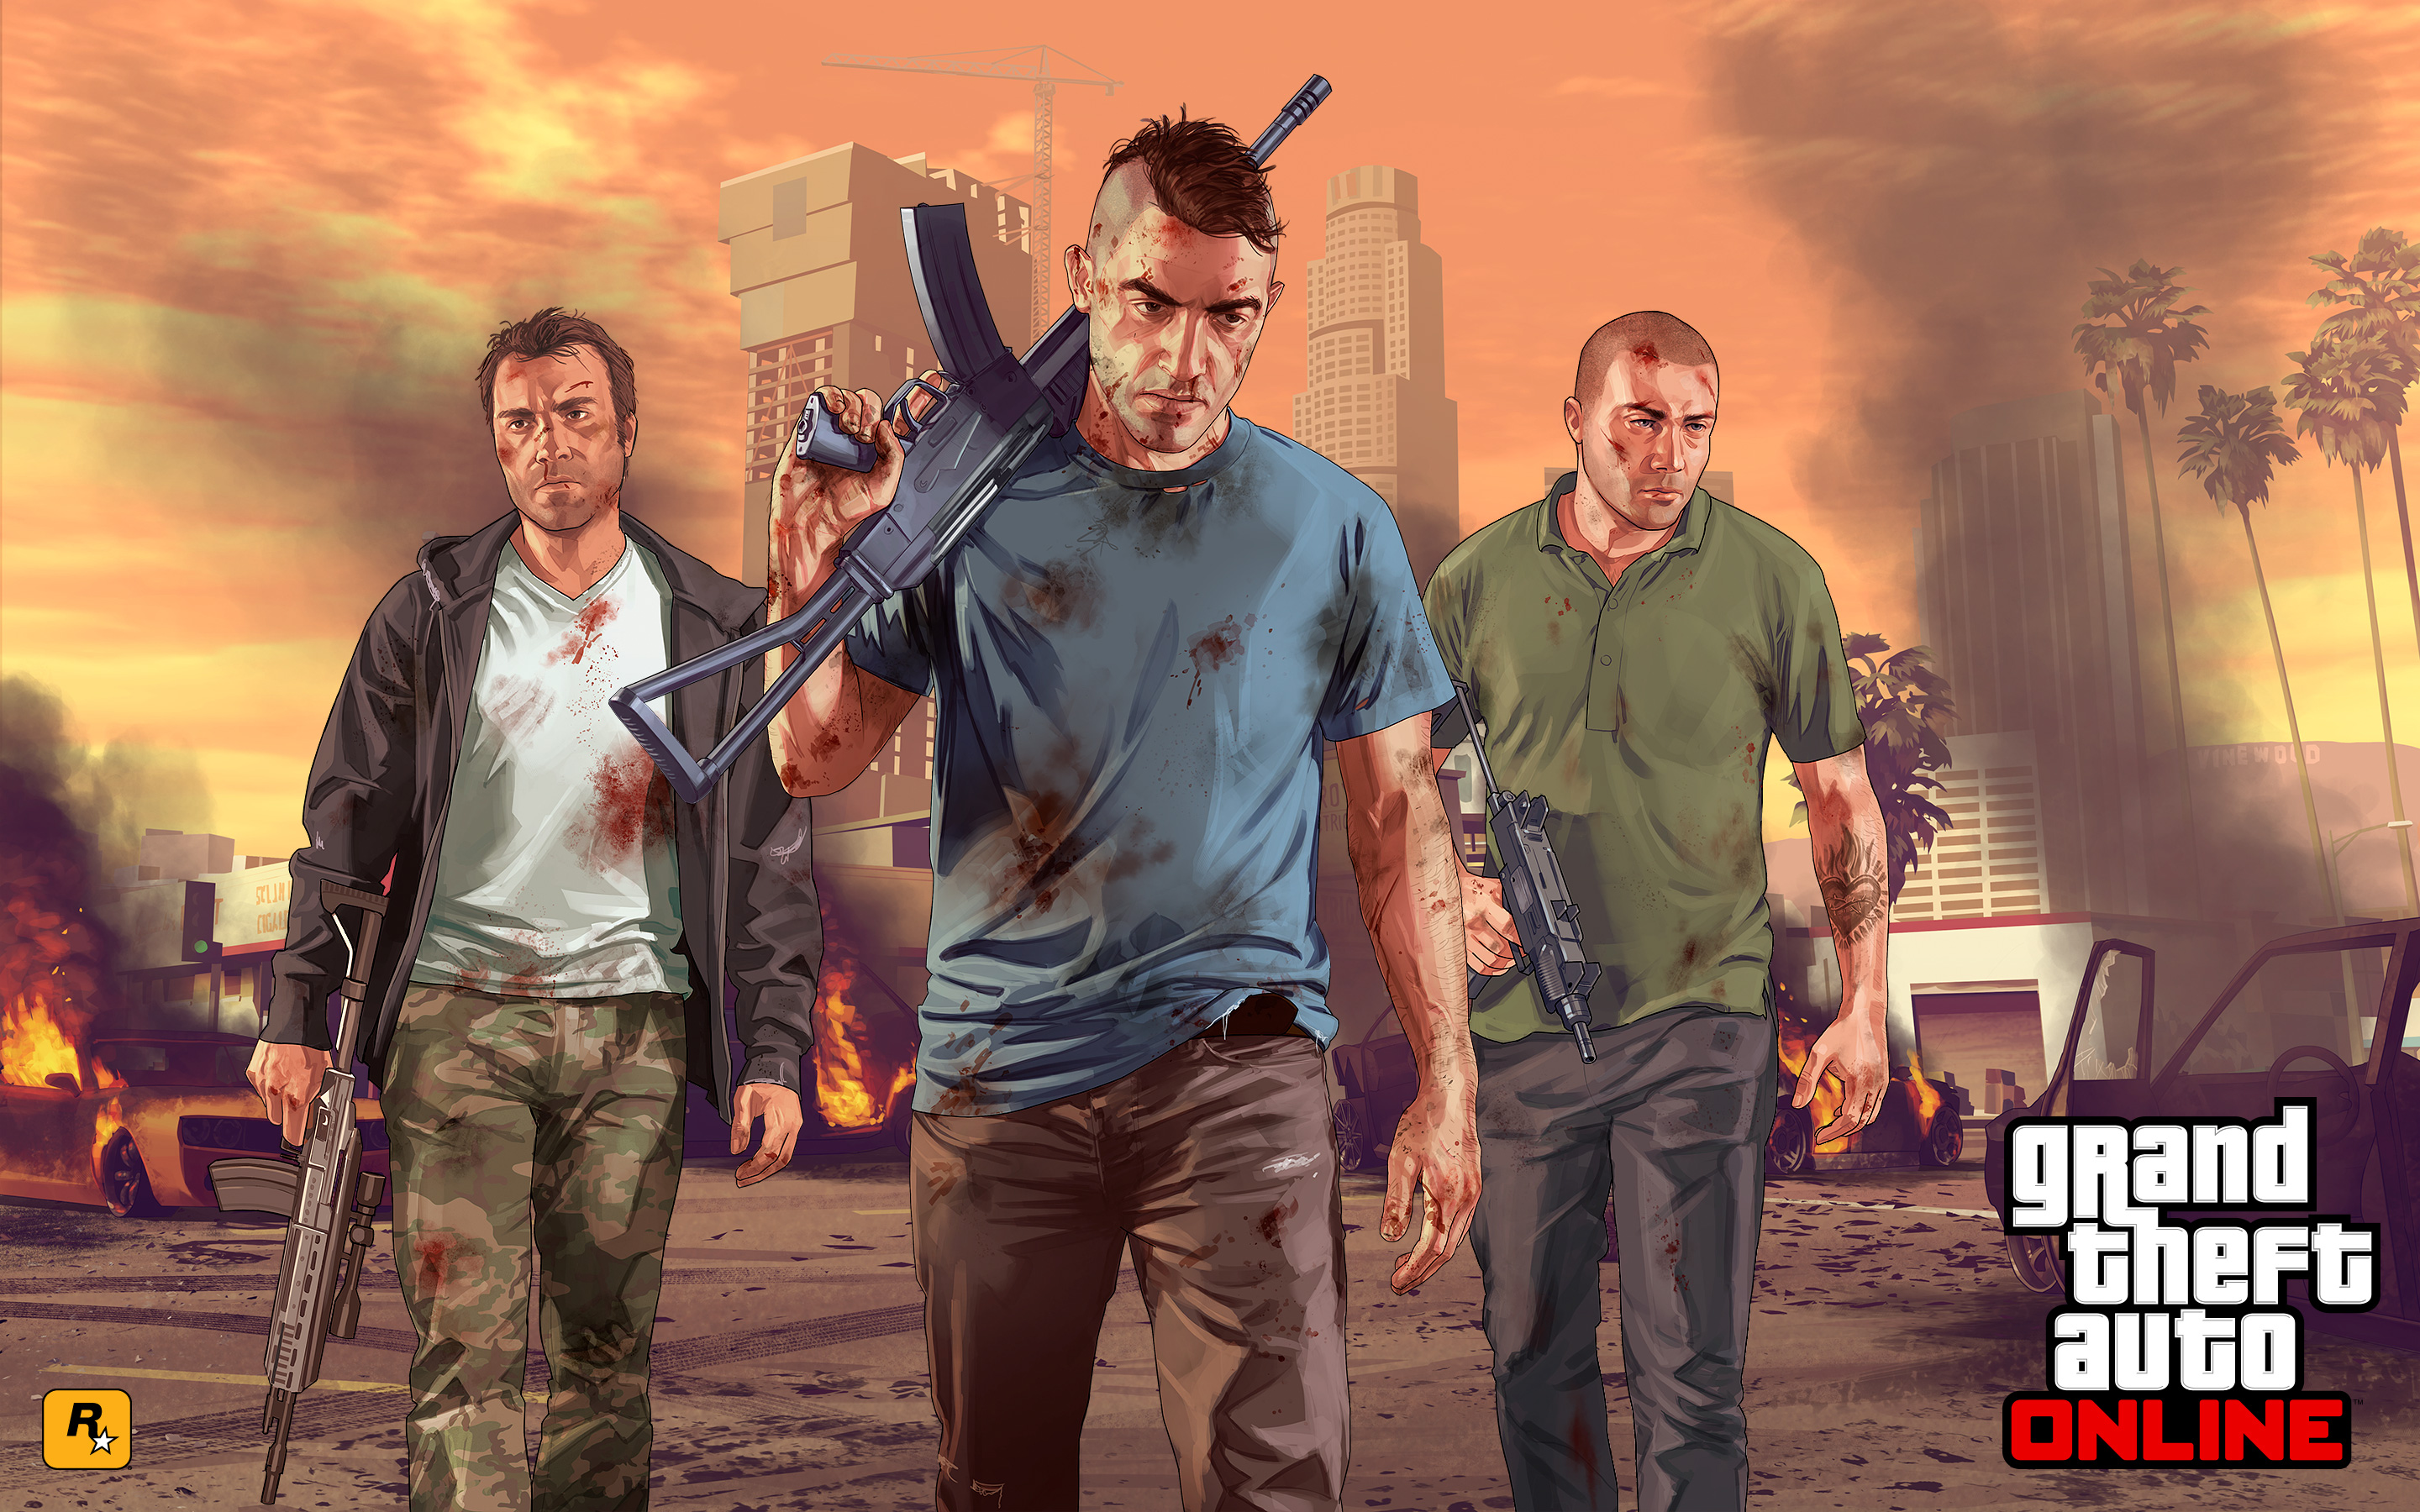 Grand Theft Auto V Hd Wallpaper Background Image 2880x1800 Id